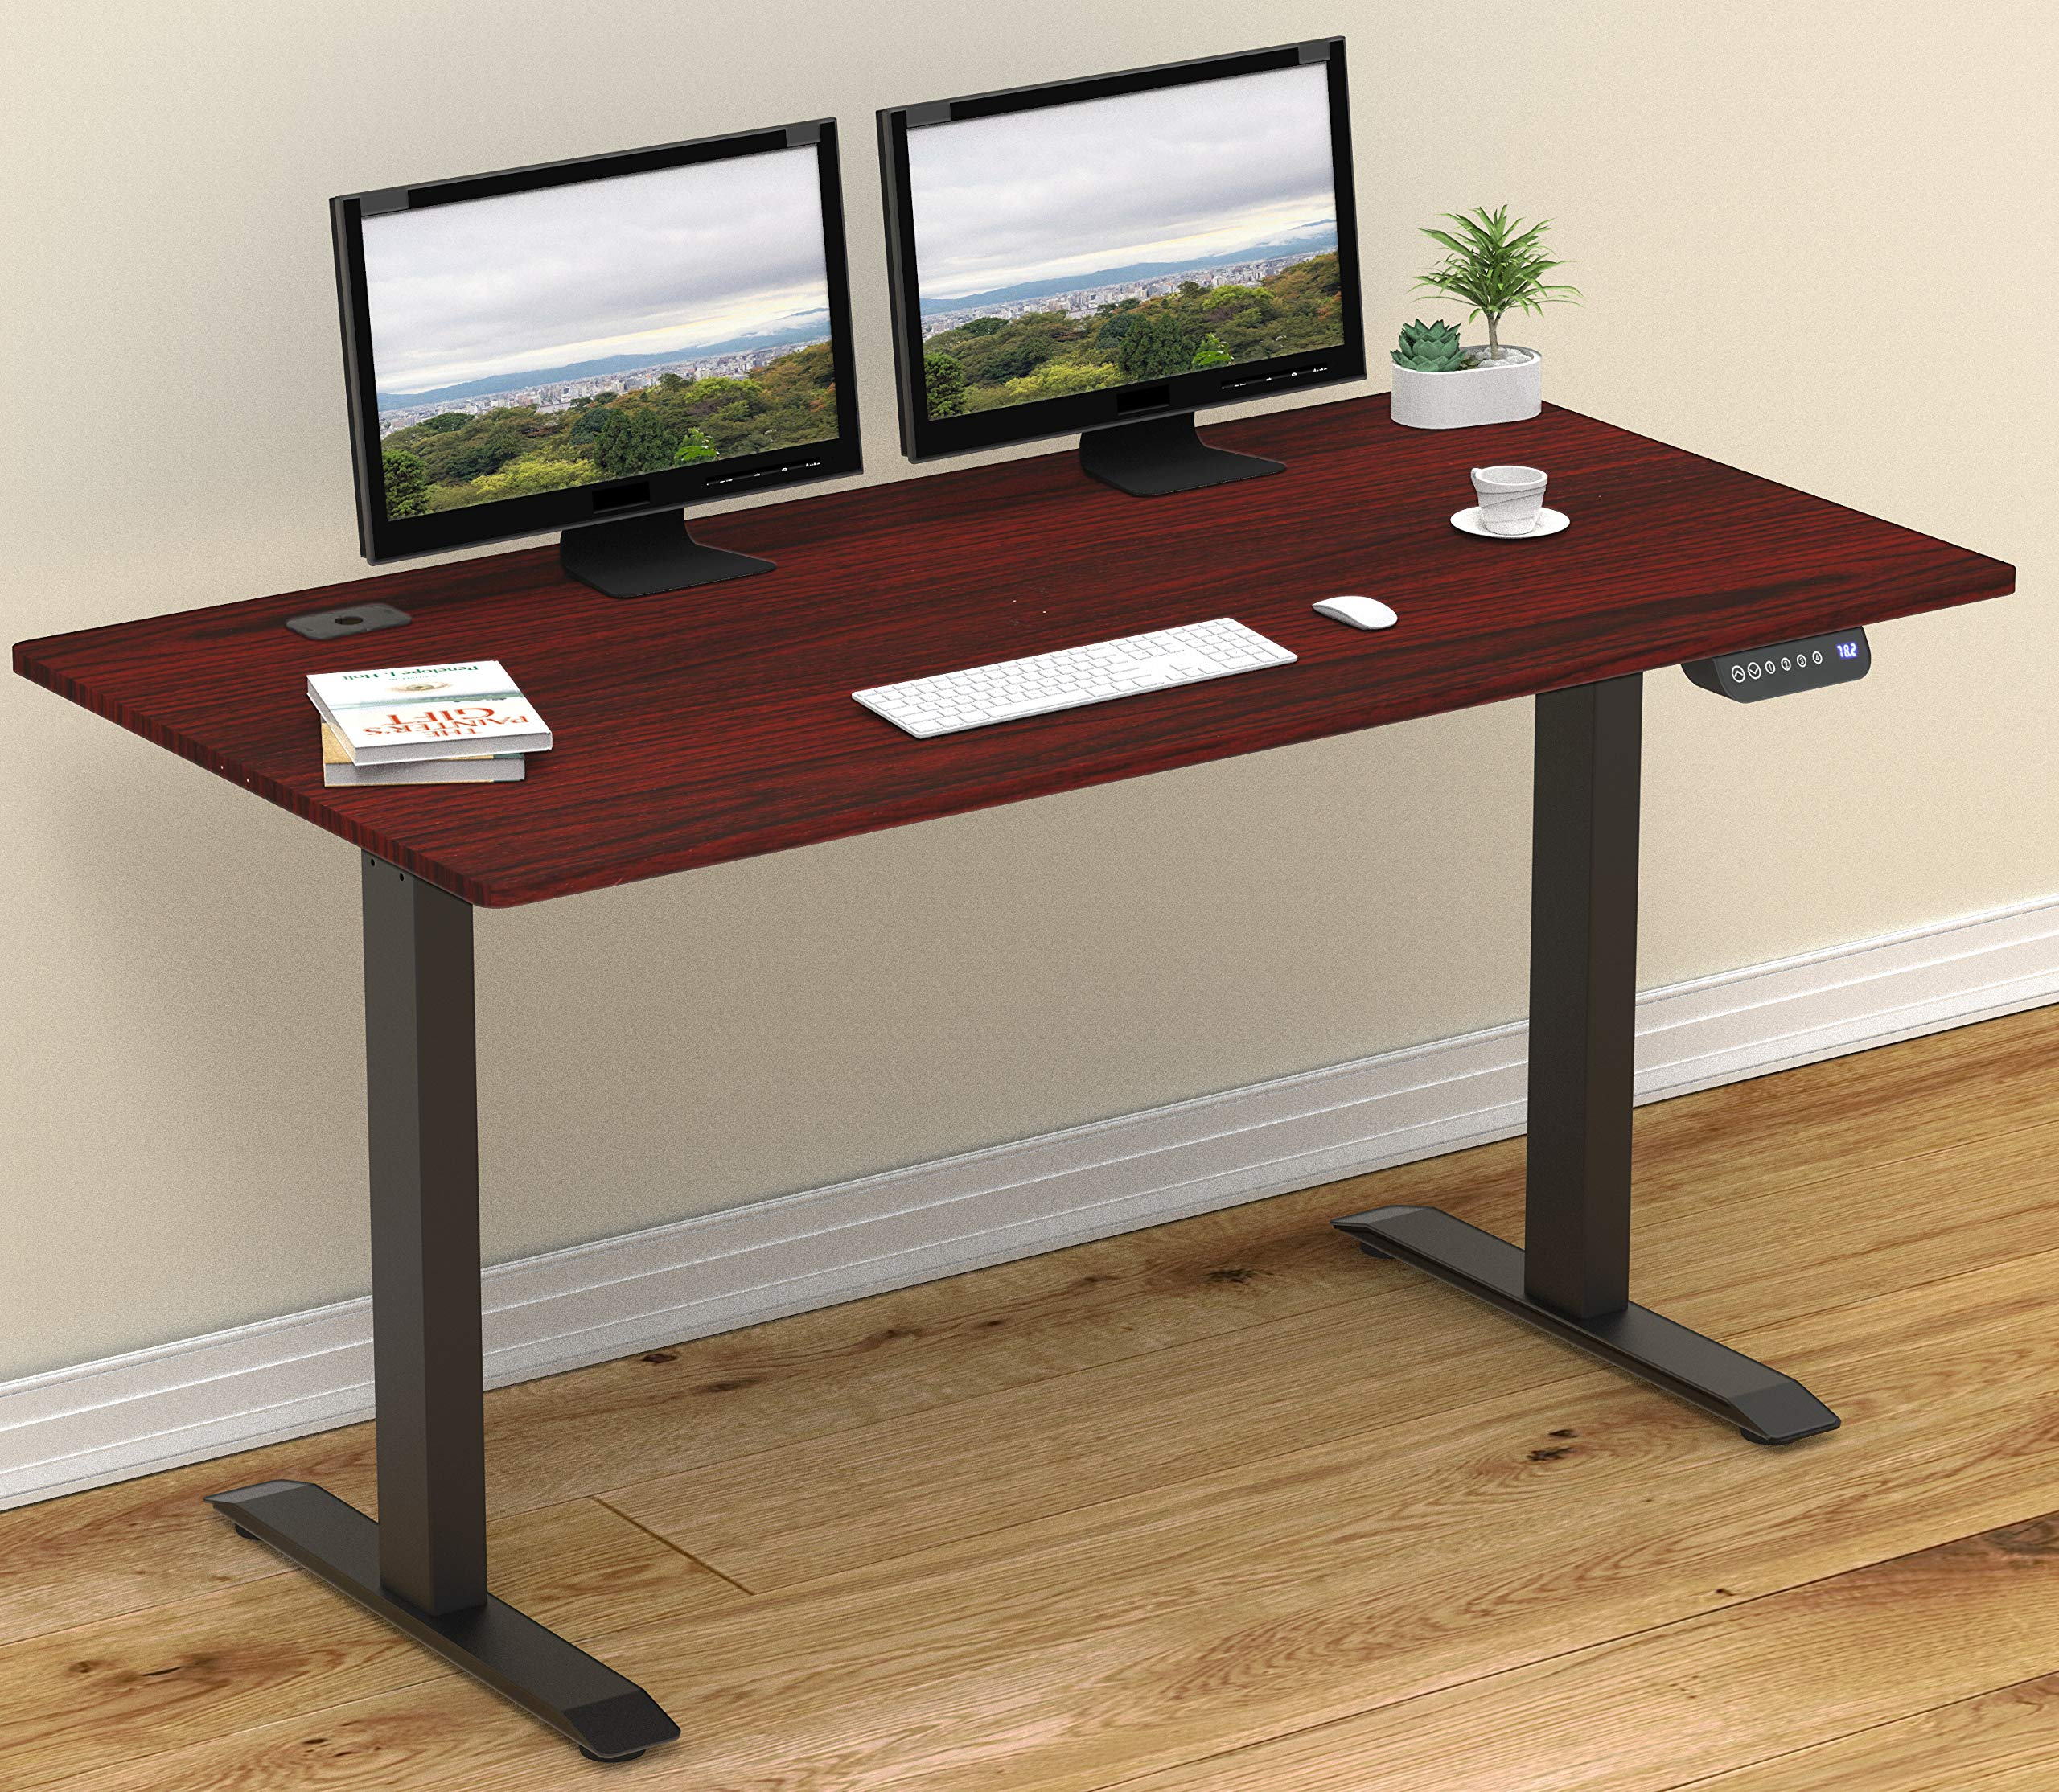 SHW 55-Inch Large Electric Height Adjustable Computer Desk, 55 x 28 Inches, Cherry by SHW